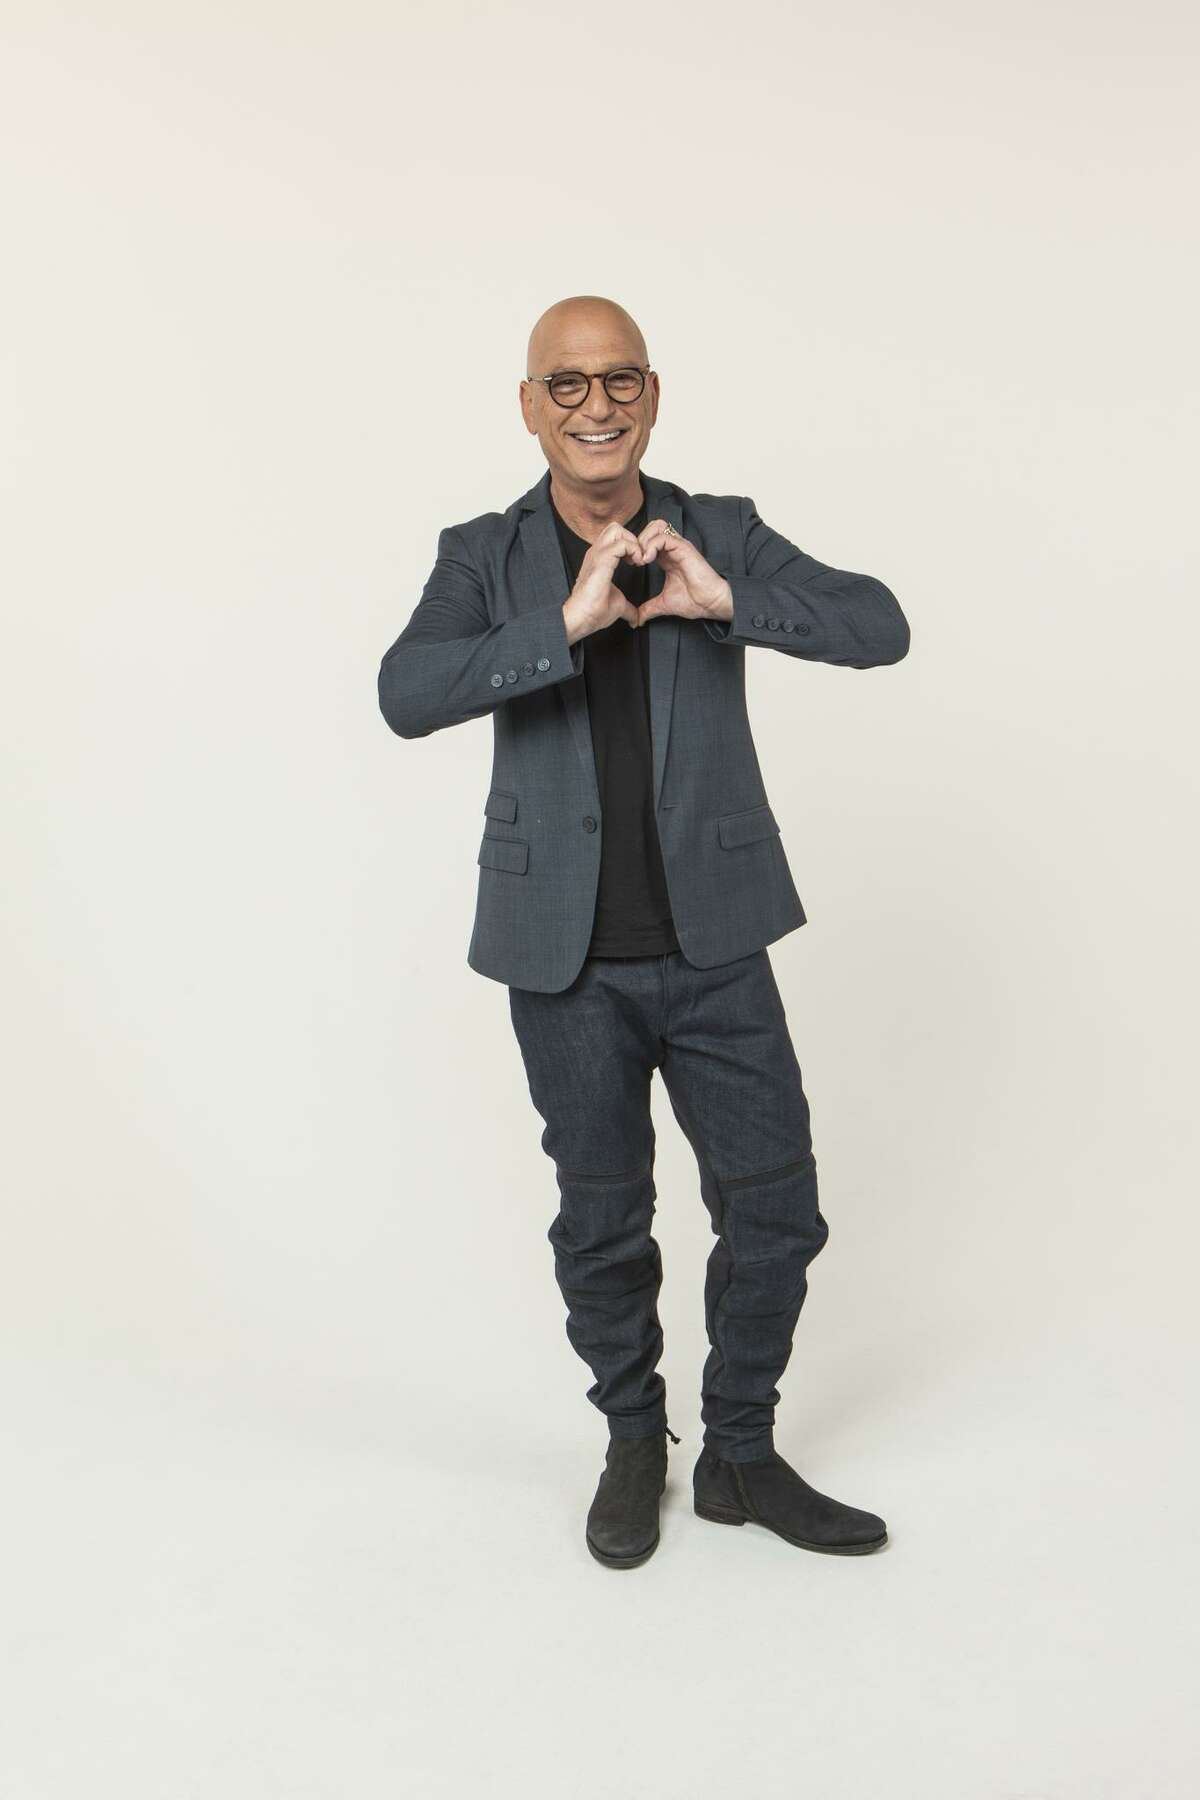 """Howie Mandel, host of """"America's Got Talent"""" and """"Deal or No Deal,"""" was diagnosed with high cholesterol at a young age. He's now an advocate for the Take Cholesterol to Heart campaign."""